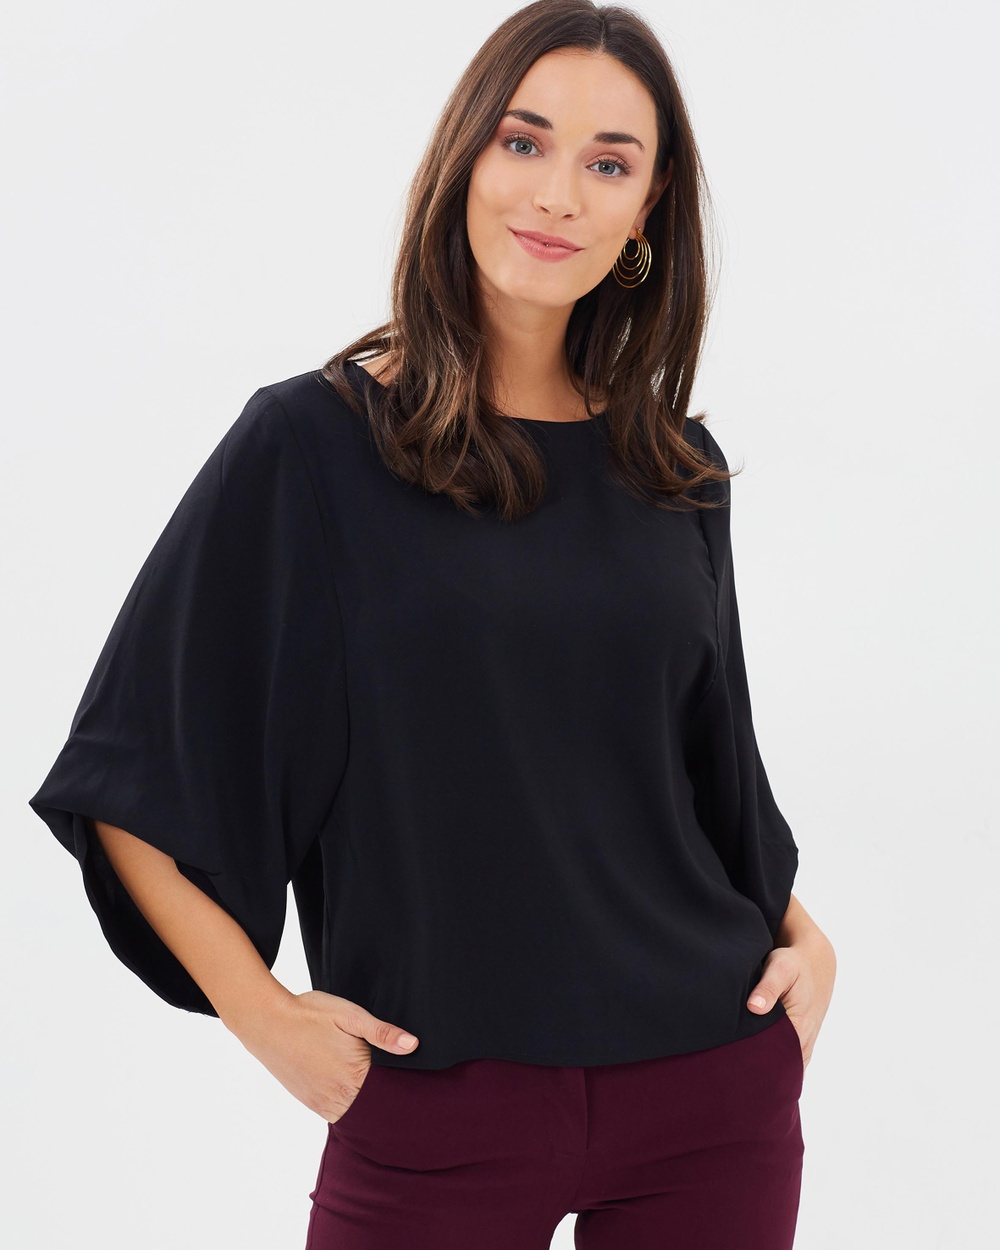 Forcast Alissa Drape Sleeve Top Tops Black Alissa Drape Sleeve Top